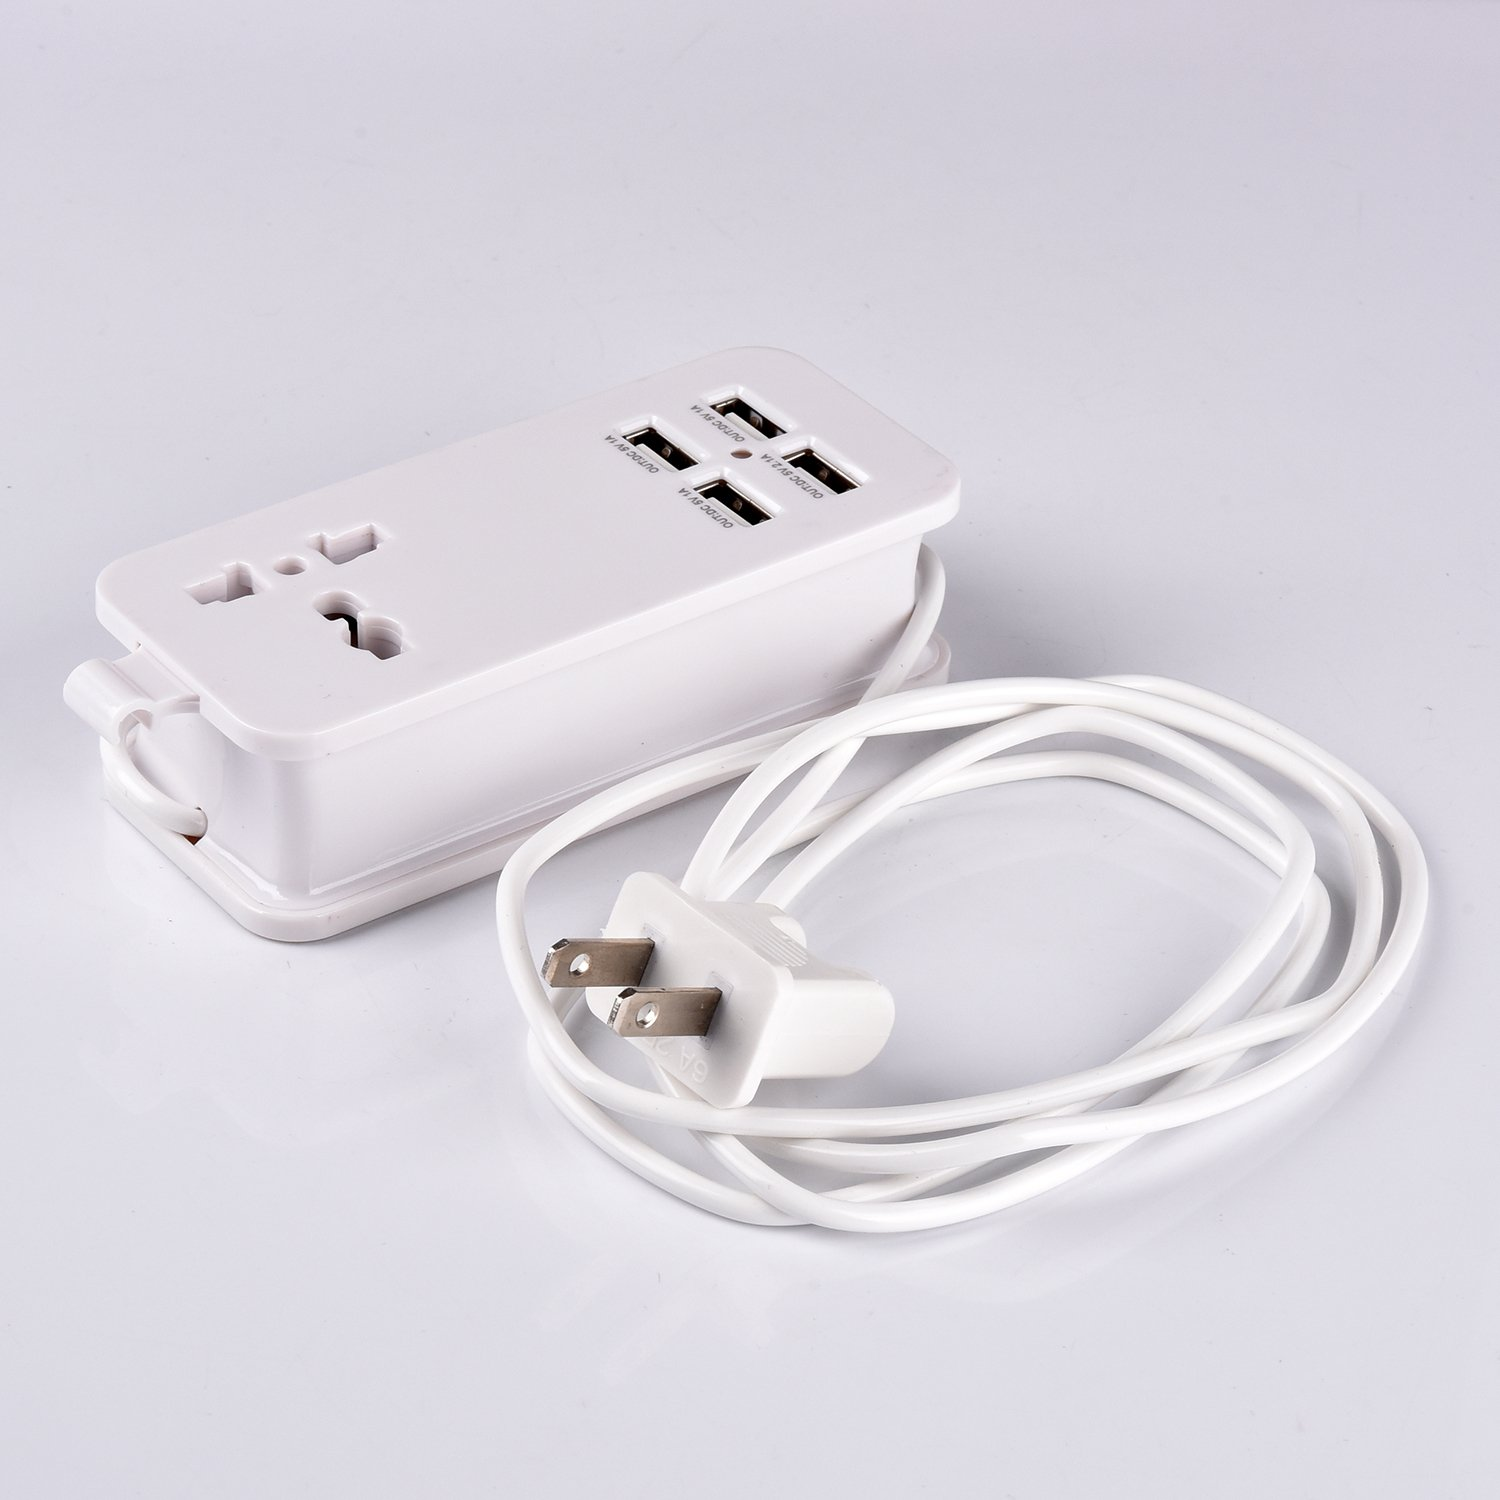 USB Power Strip Portable Travel Charger Outlets 2.1AMP 1AMP 21W 5Foot Power Supply Cord With Universal Plug Input From 100v-240v Power Sockets USB Charger Station 4 Port 5v 1A/2.1A USB Charger (White) by ETPocket (Image #7)